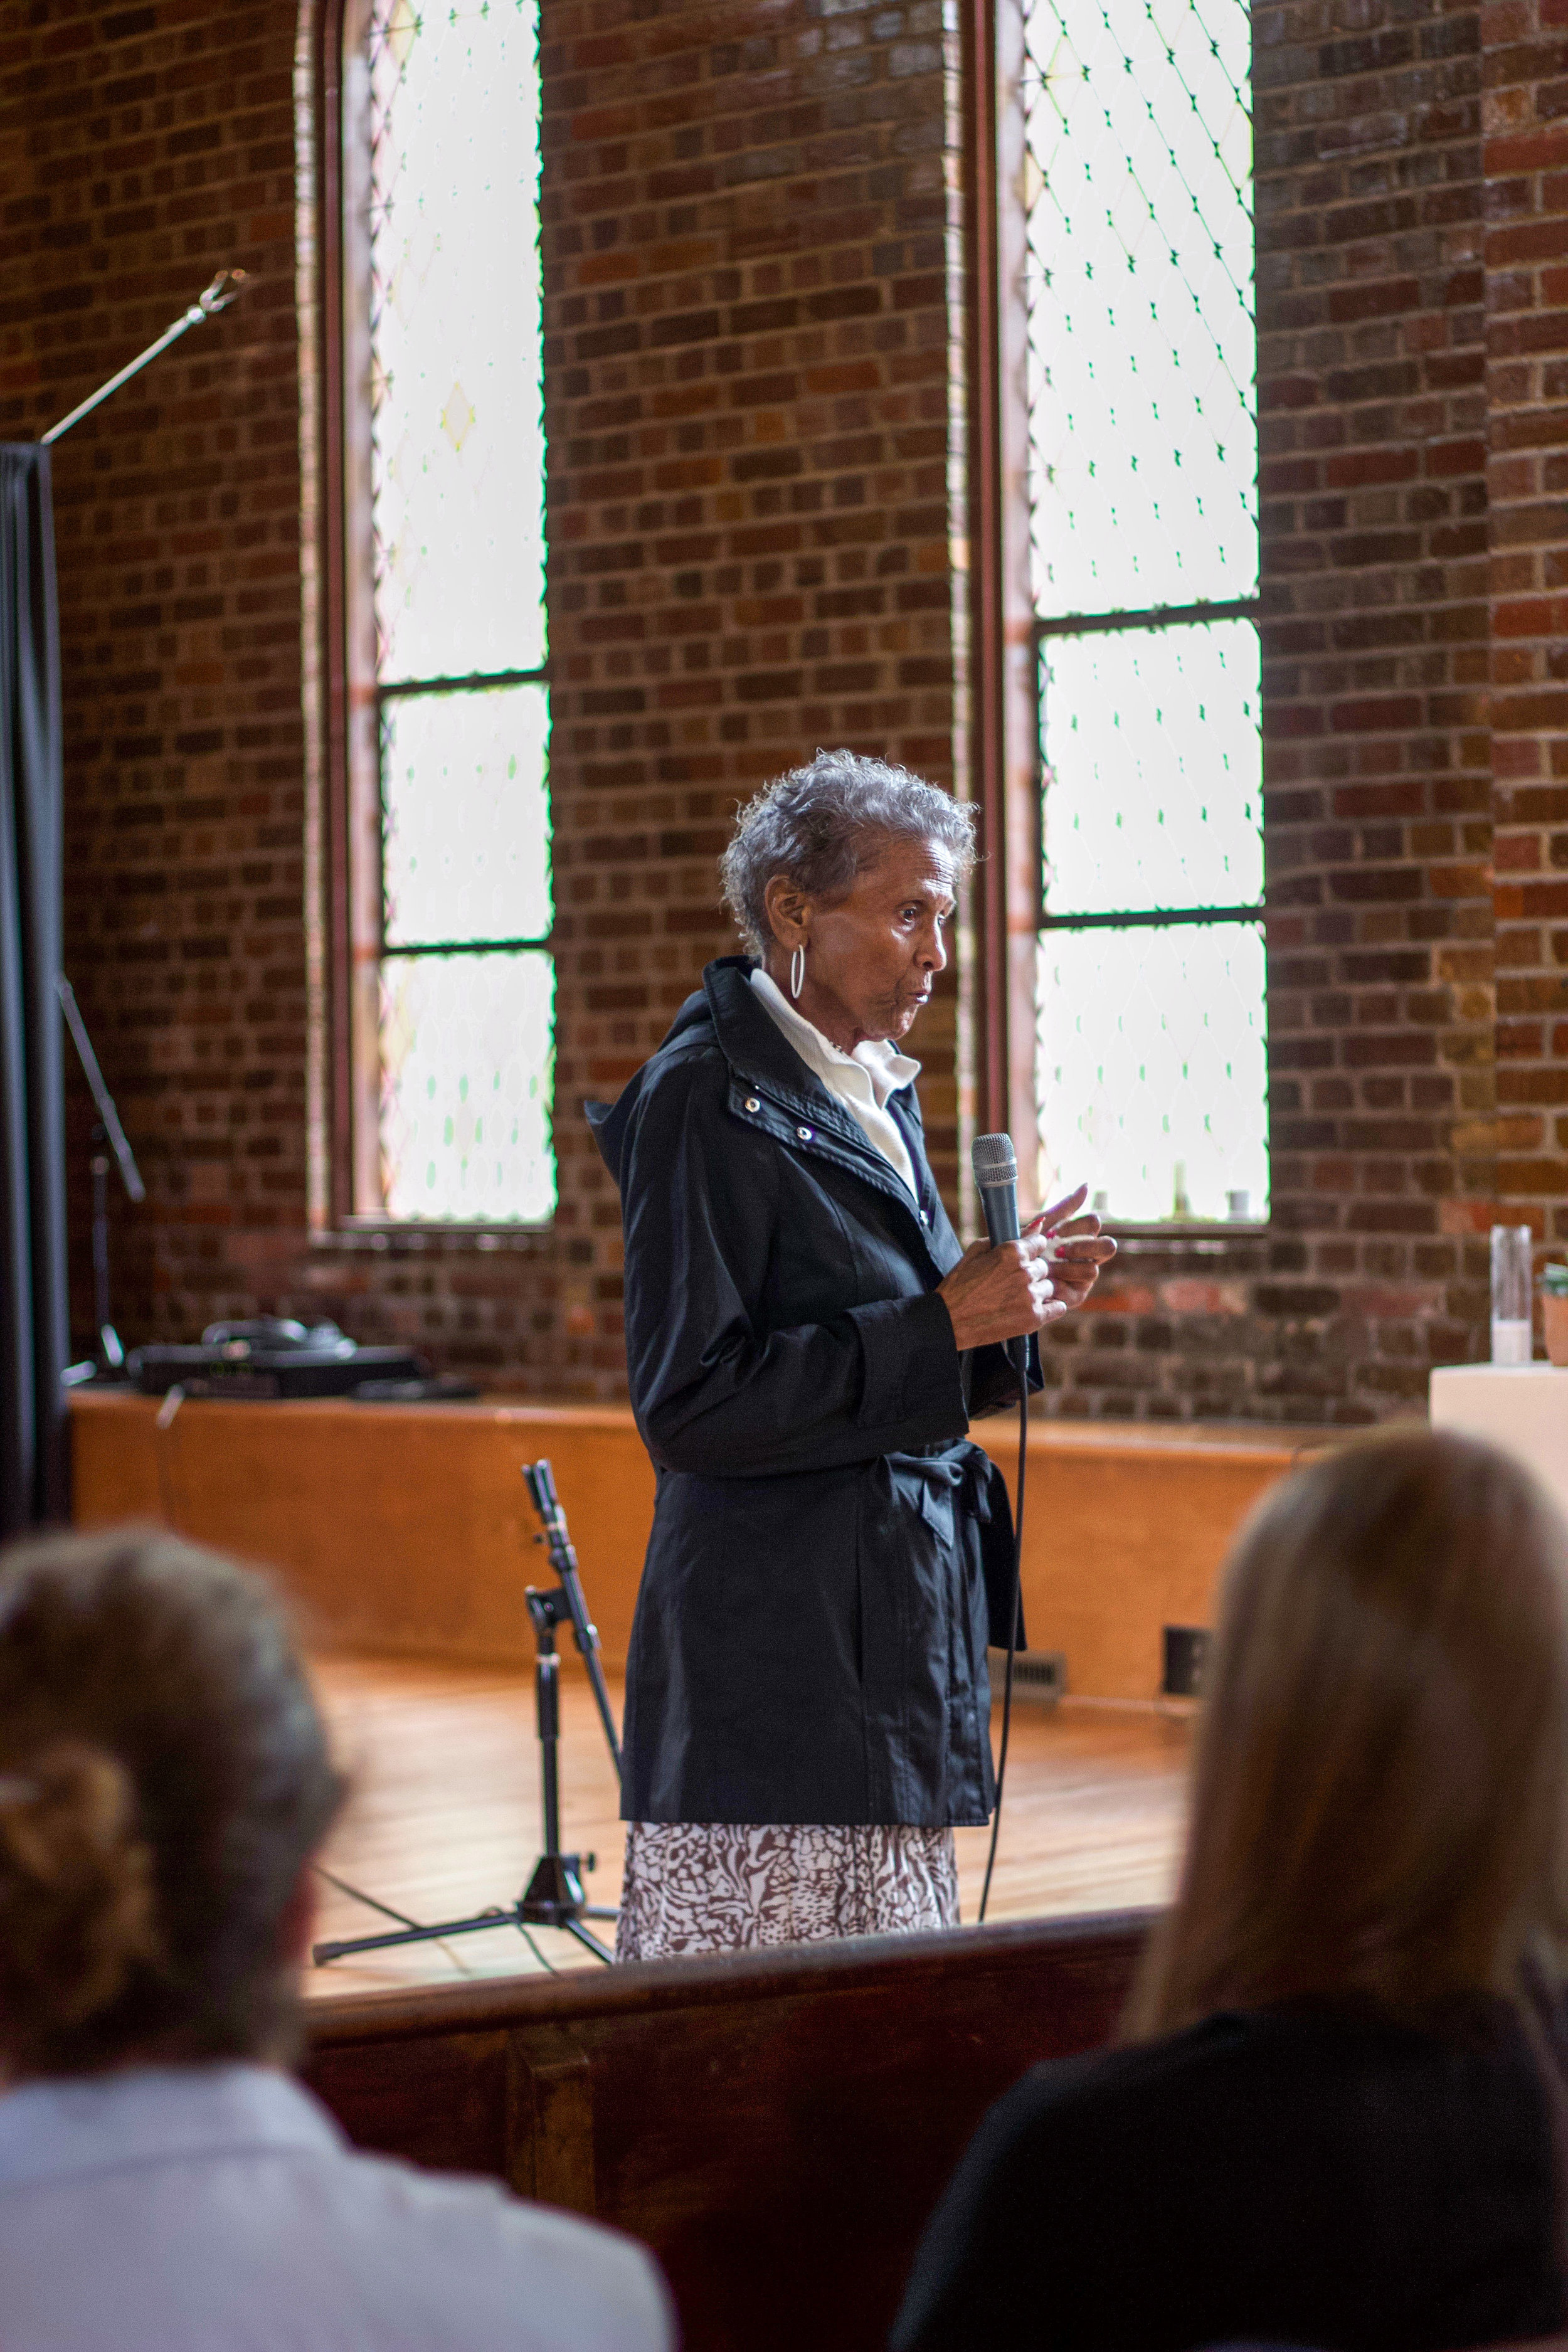 Ms. Turrentine  shares her story at a   community forum in Durham, NC on April 13, 2019. Photo by Rebecca Payne.